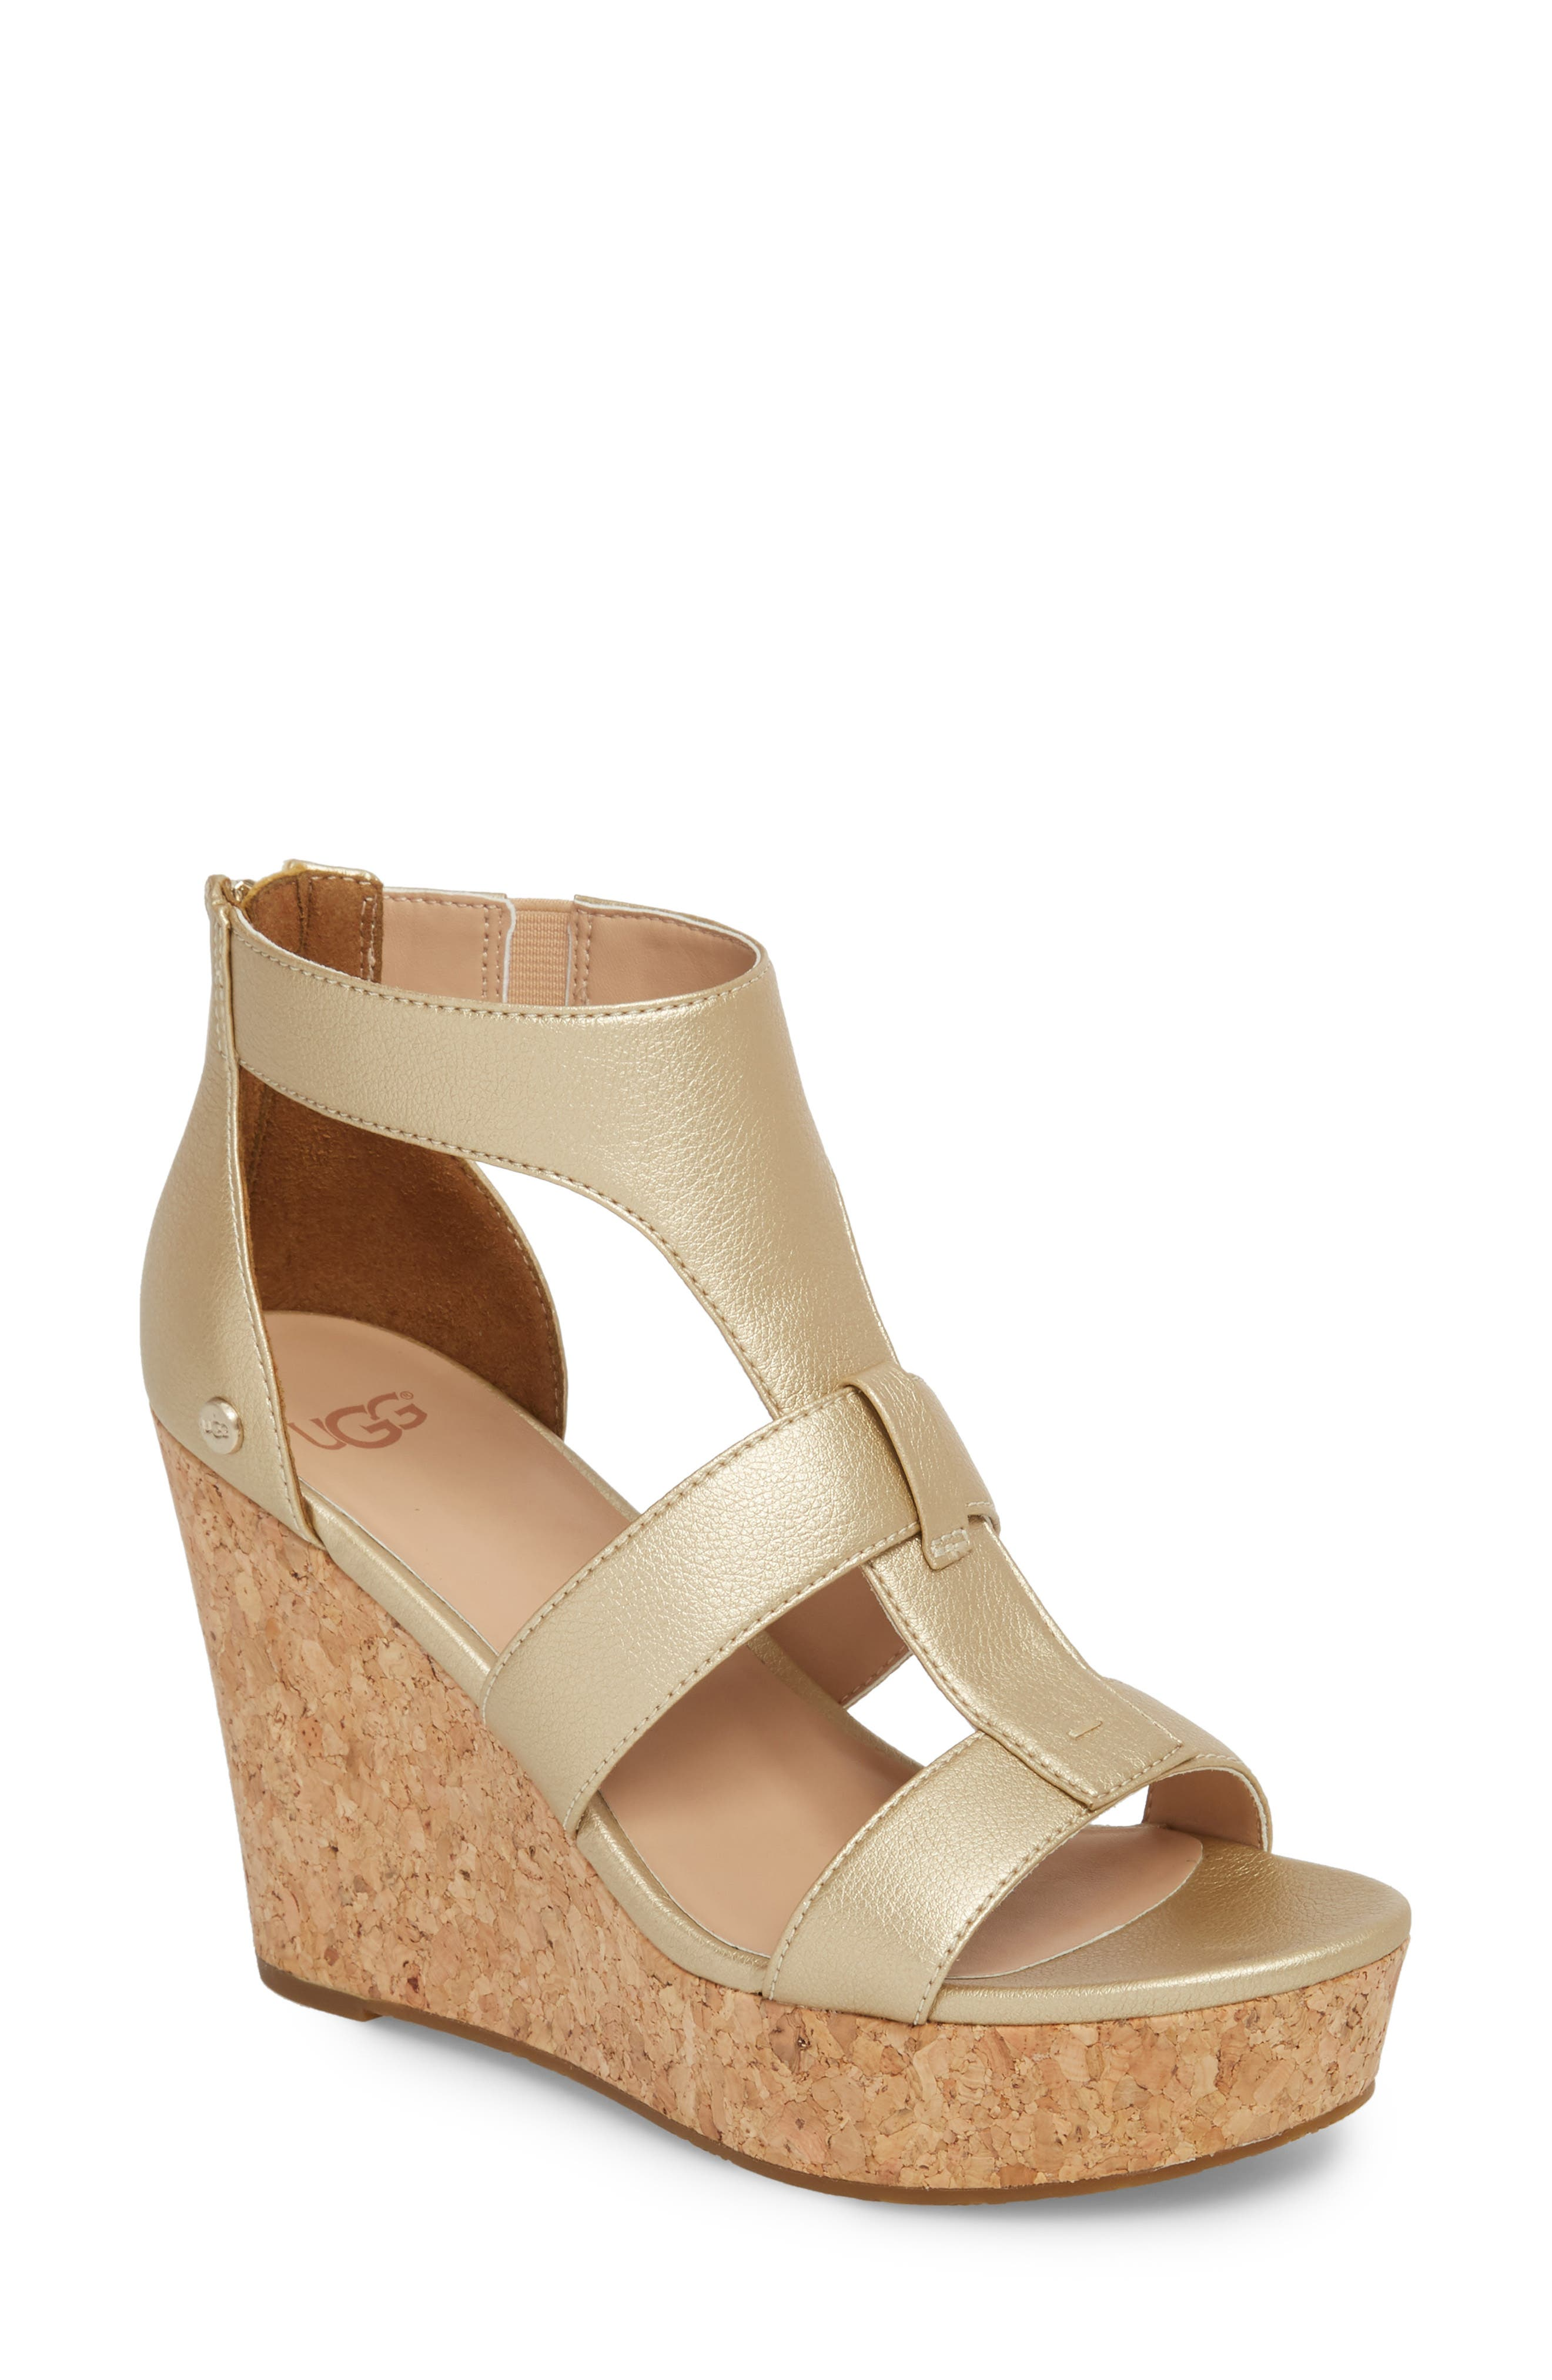 Whitney Platform Wedge Sandal,                             Main thumbnail 1, color,                             GOLD LEATHER